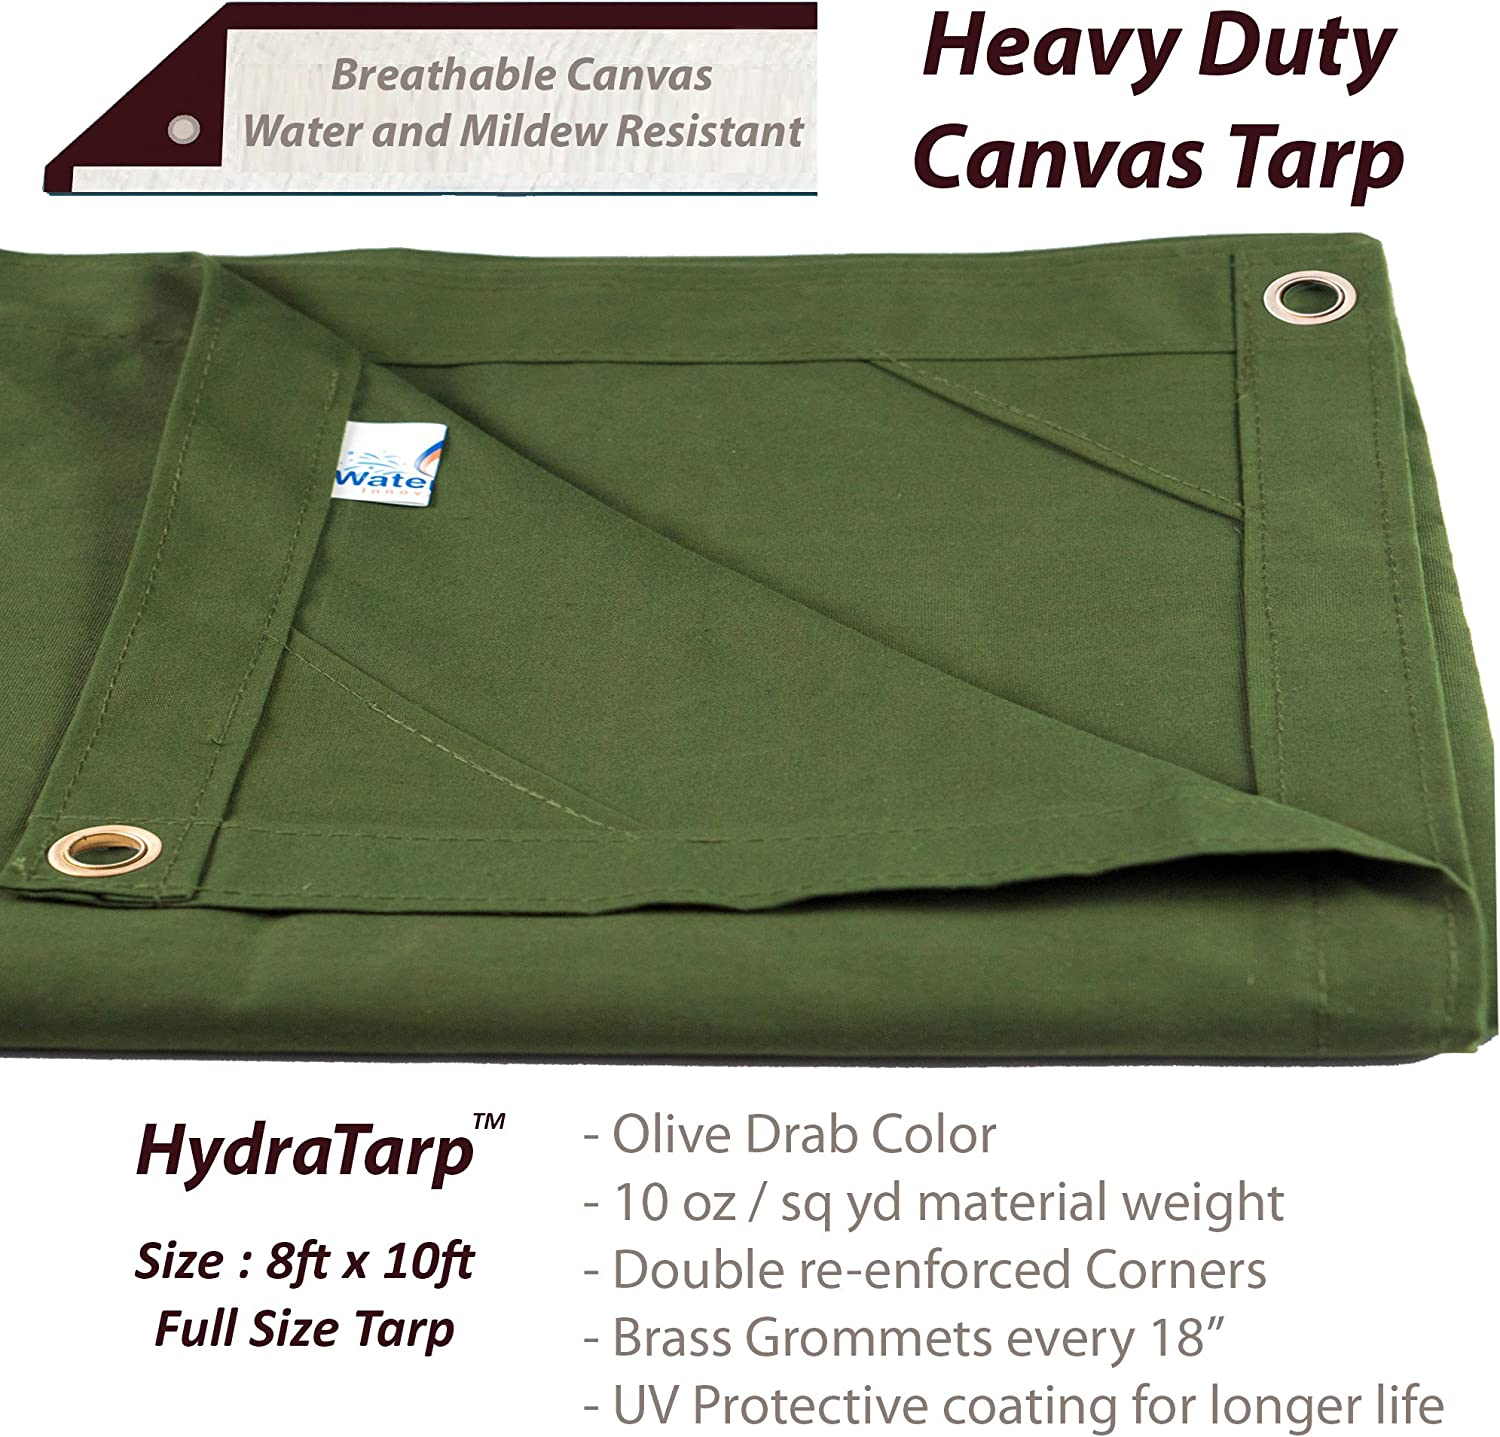 HydraTarp Canvas 6 Ft. X 8 Ft. Olive Drab Tarp - 10oz Weight